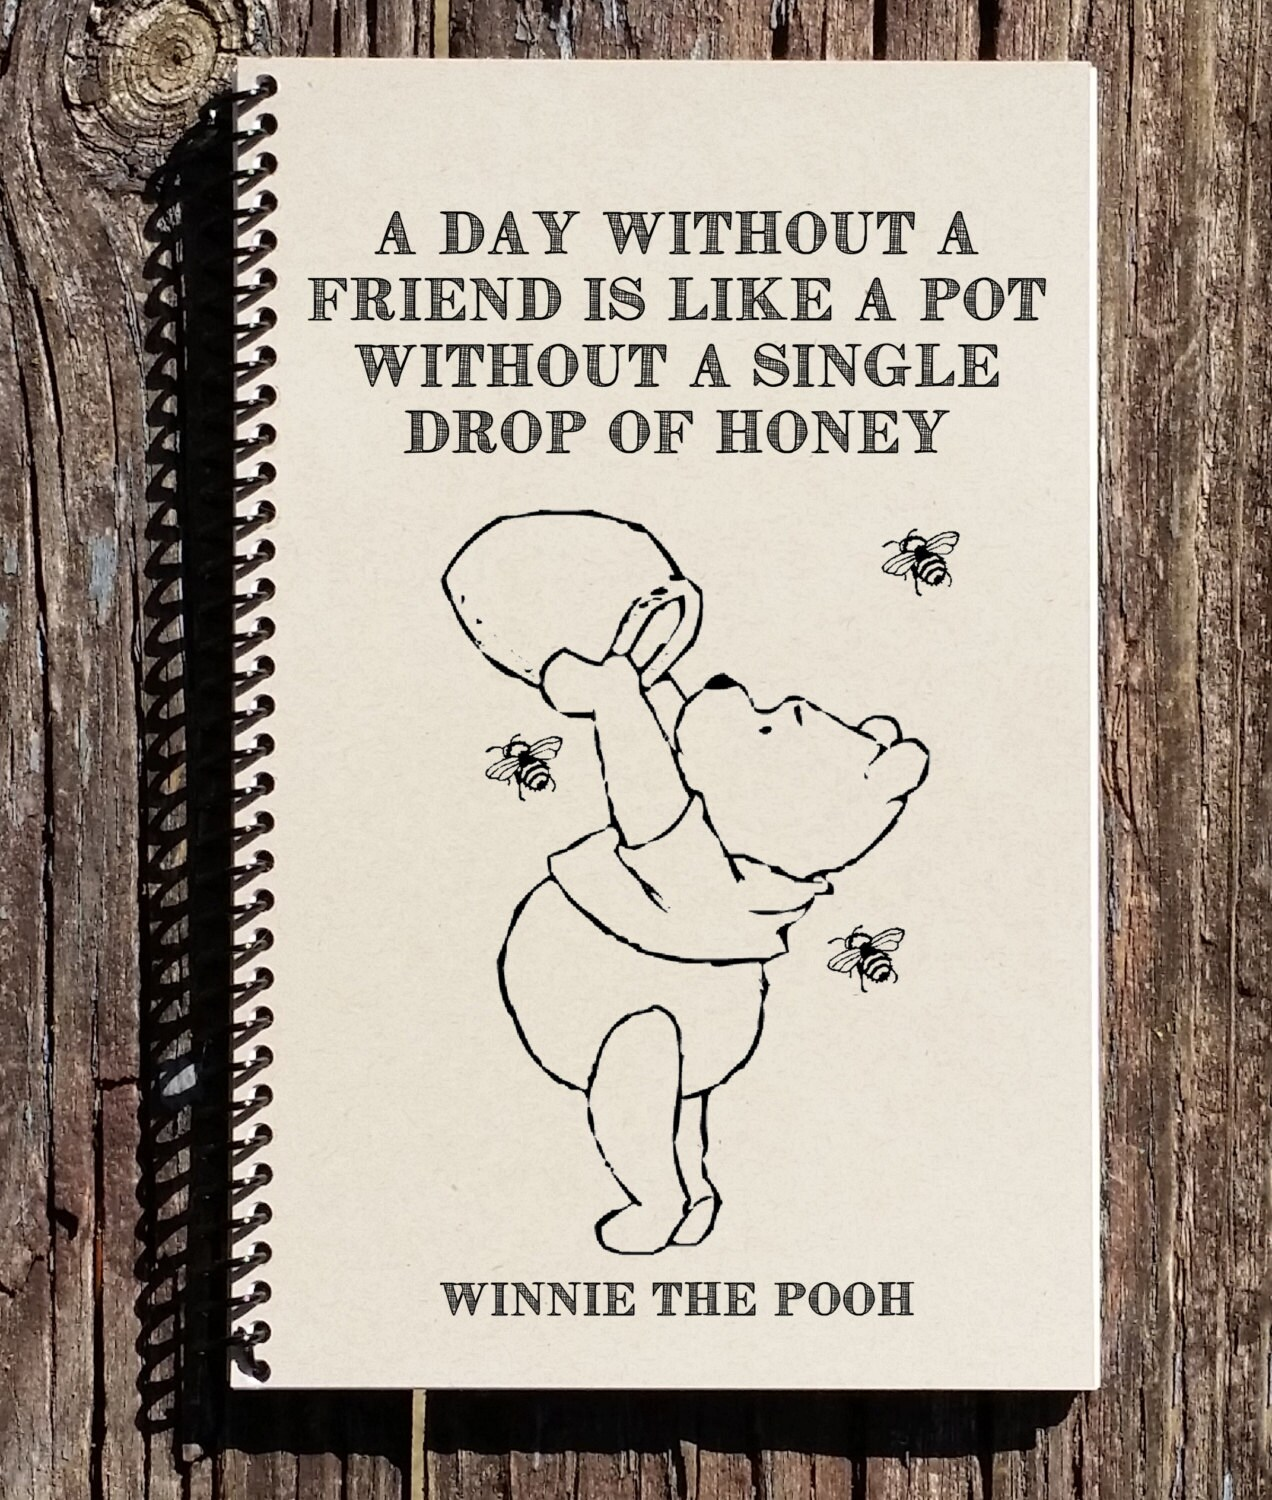 Quotes About Friendship Winnie The Pooh Winnie The Pooh Friendship Quote A Day Without A Friend